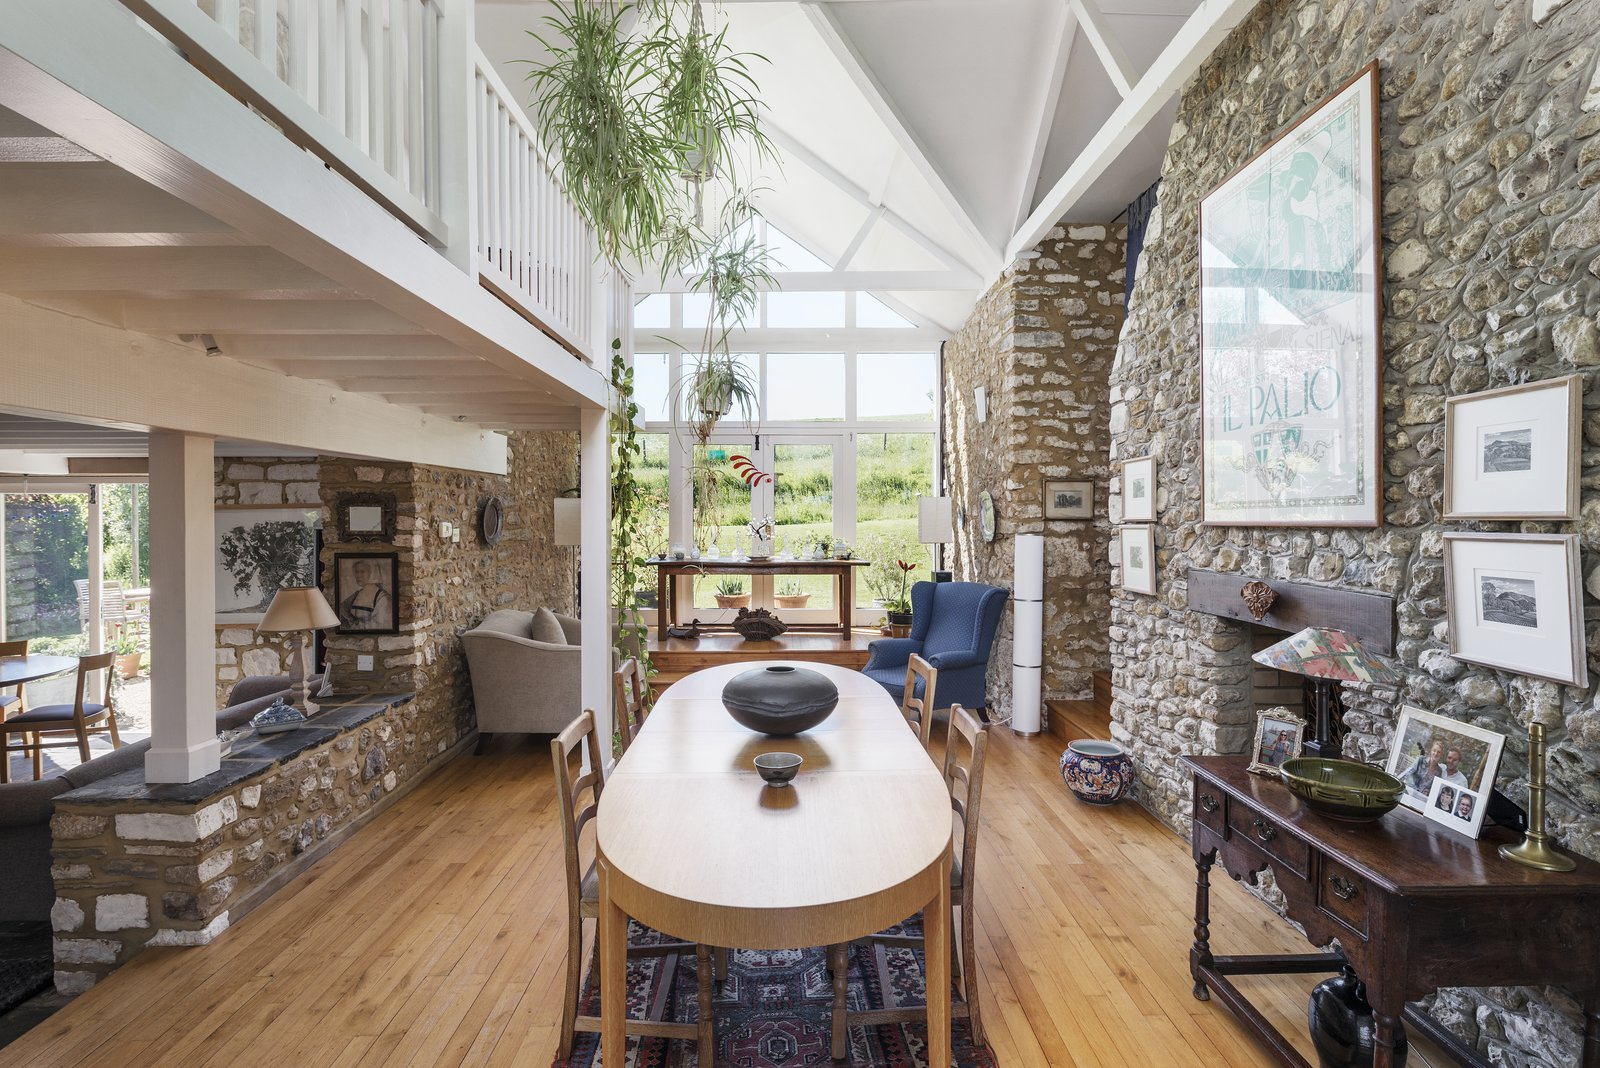 The full-height chimney stack creates a natural division between the dining and living room to the right. A wall of windows caps one end of the space, warming it with natural light and providing picturesque views of the landscape.